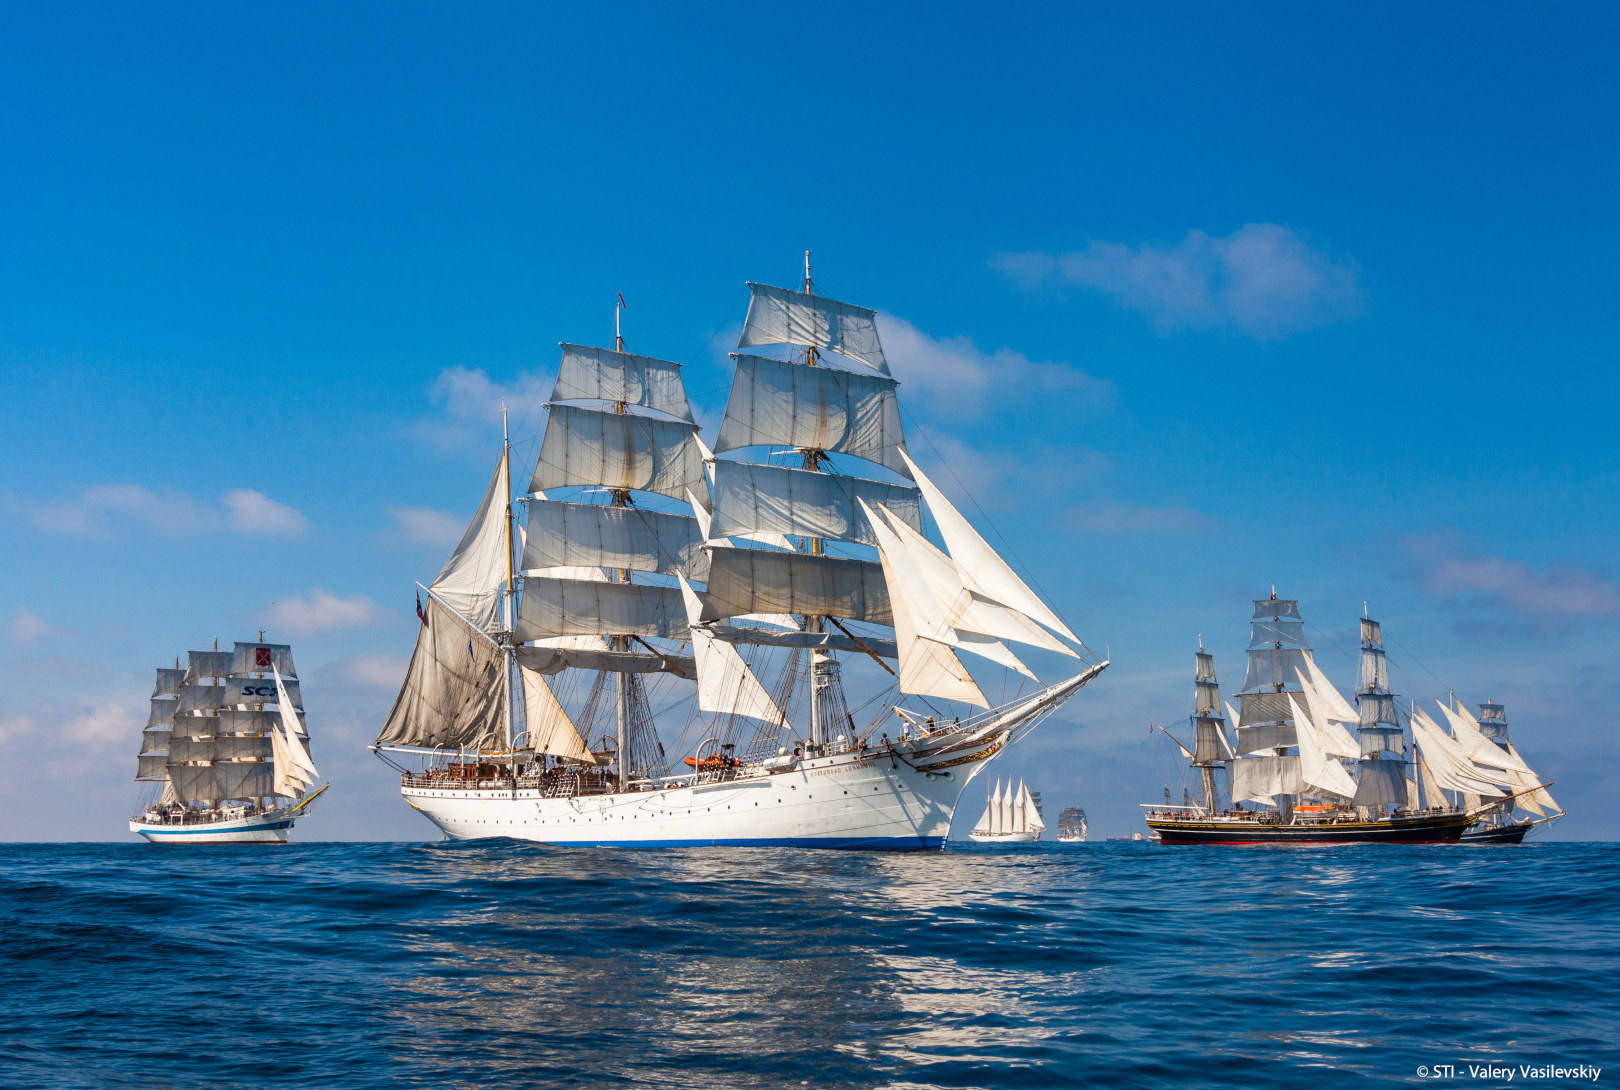 2_TallShipsRaces_3_PhotoValeryVasilevskiy